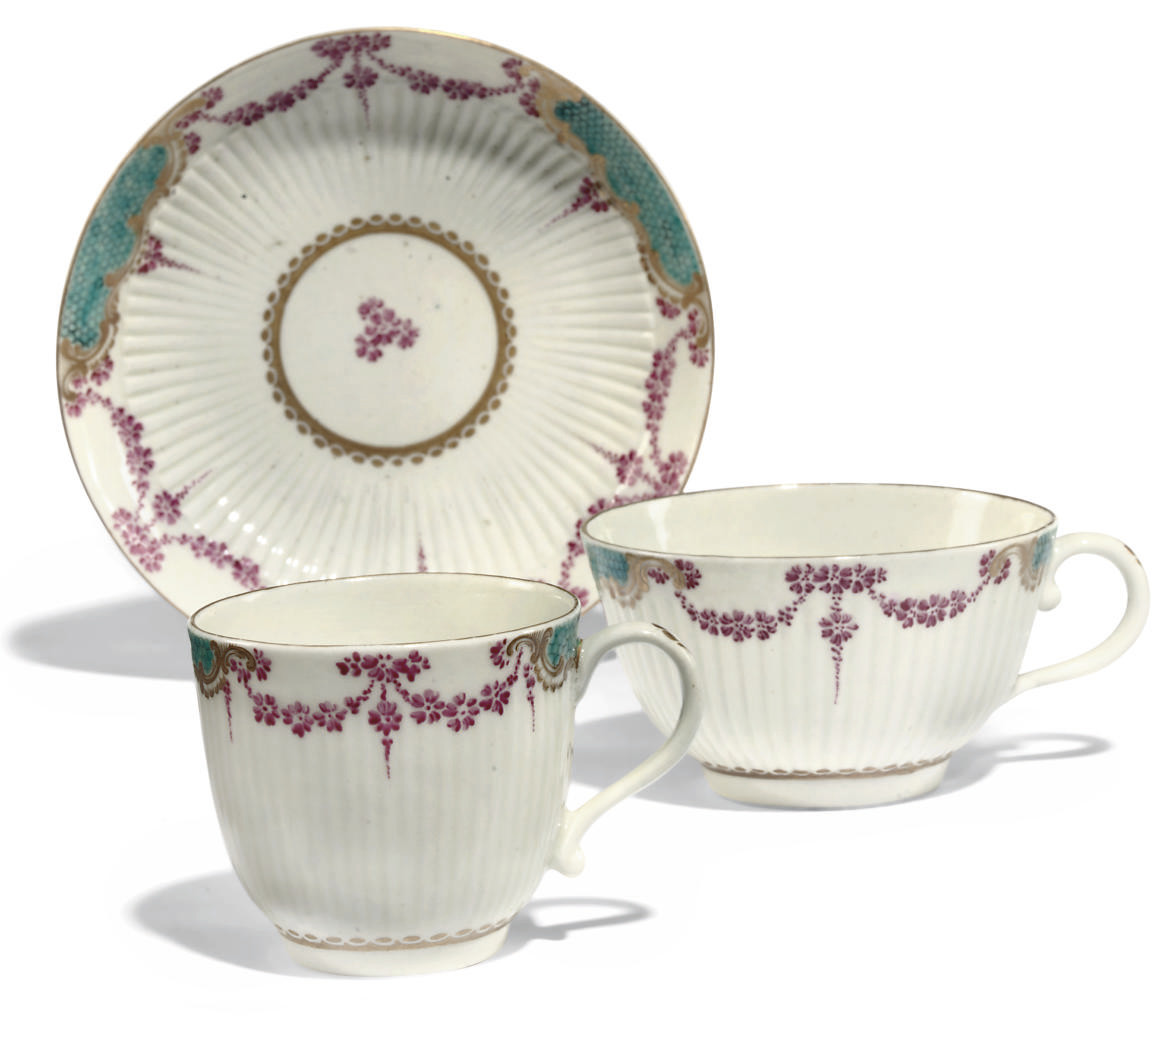 A WORCESTER REEDED TEACUP, COFFEE-CUP AND SAUCER